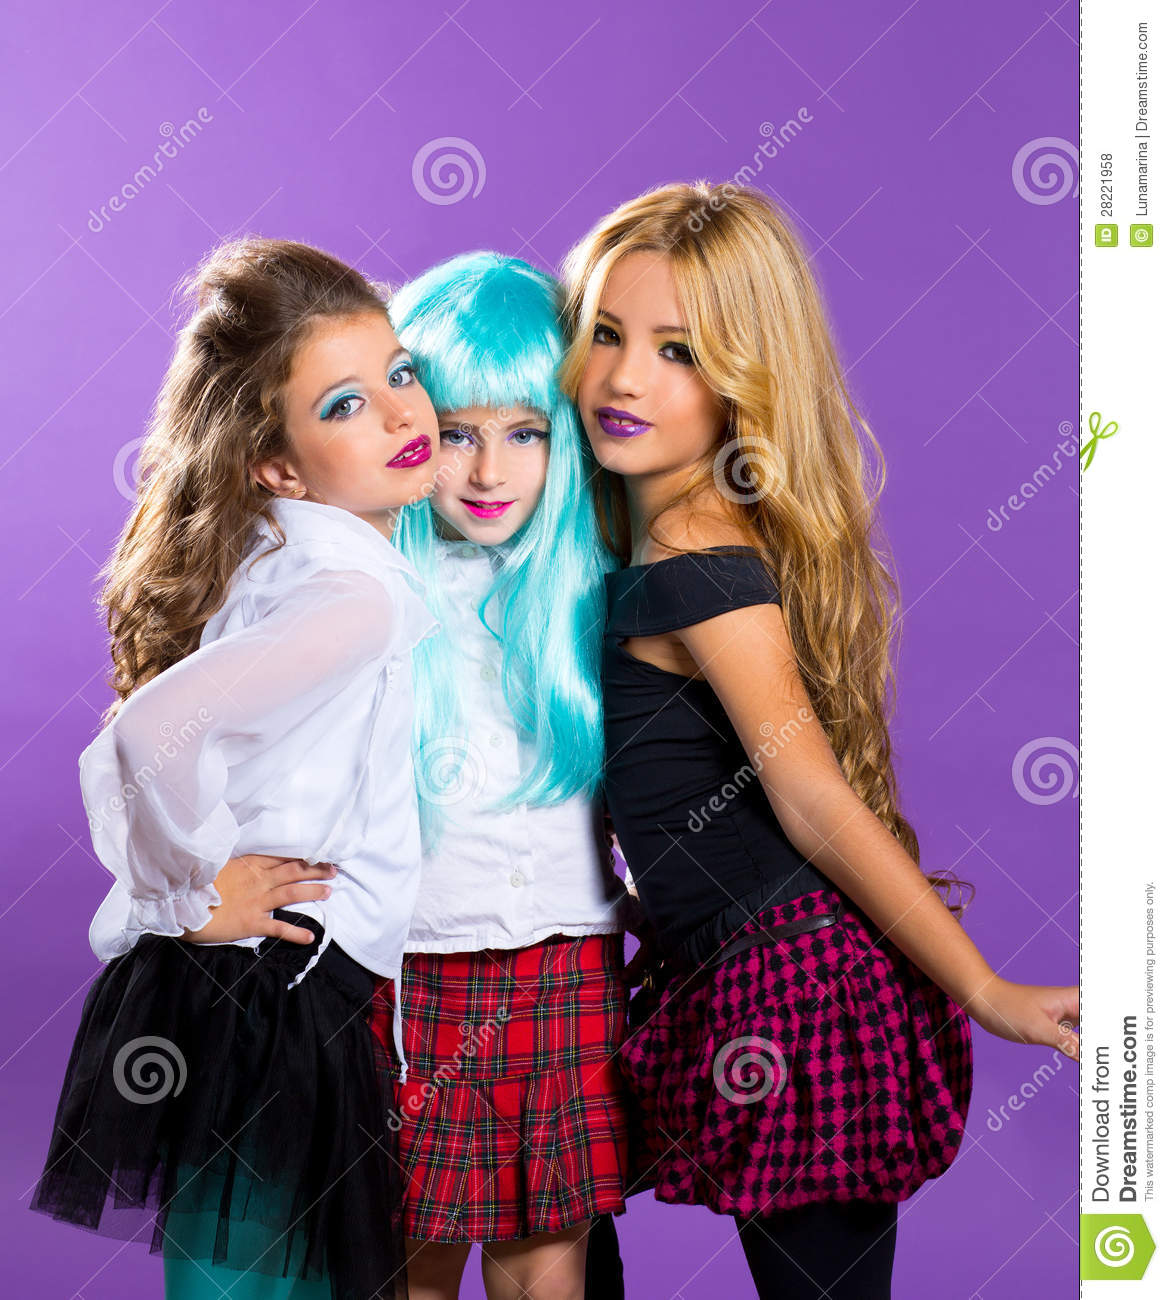 Children Group Of Fashiondoll Fashion Girls On Purple Royalty Free Stock Photos Image 28221958